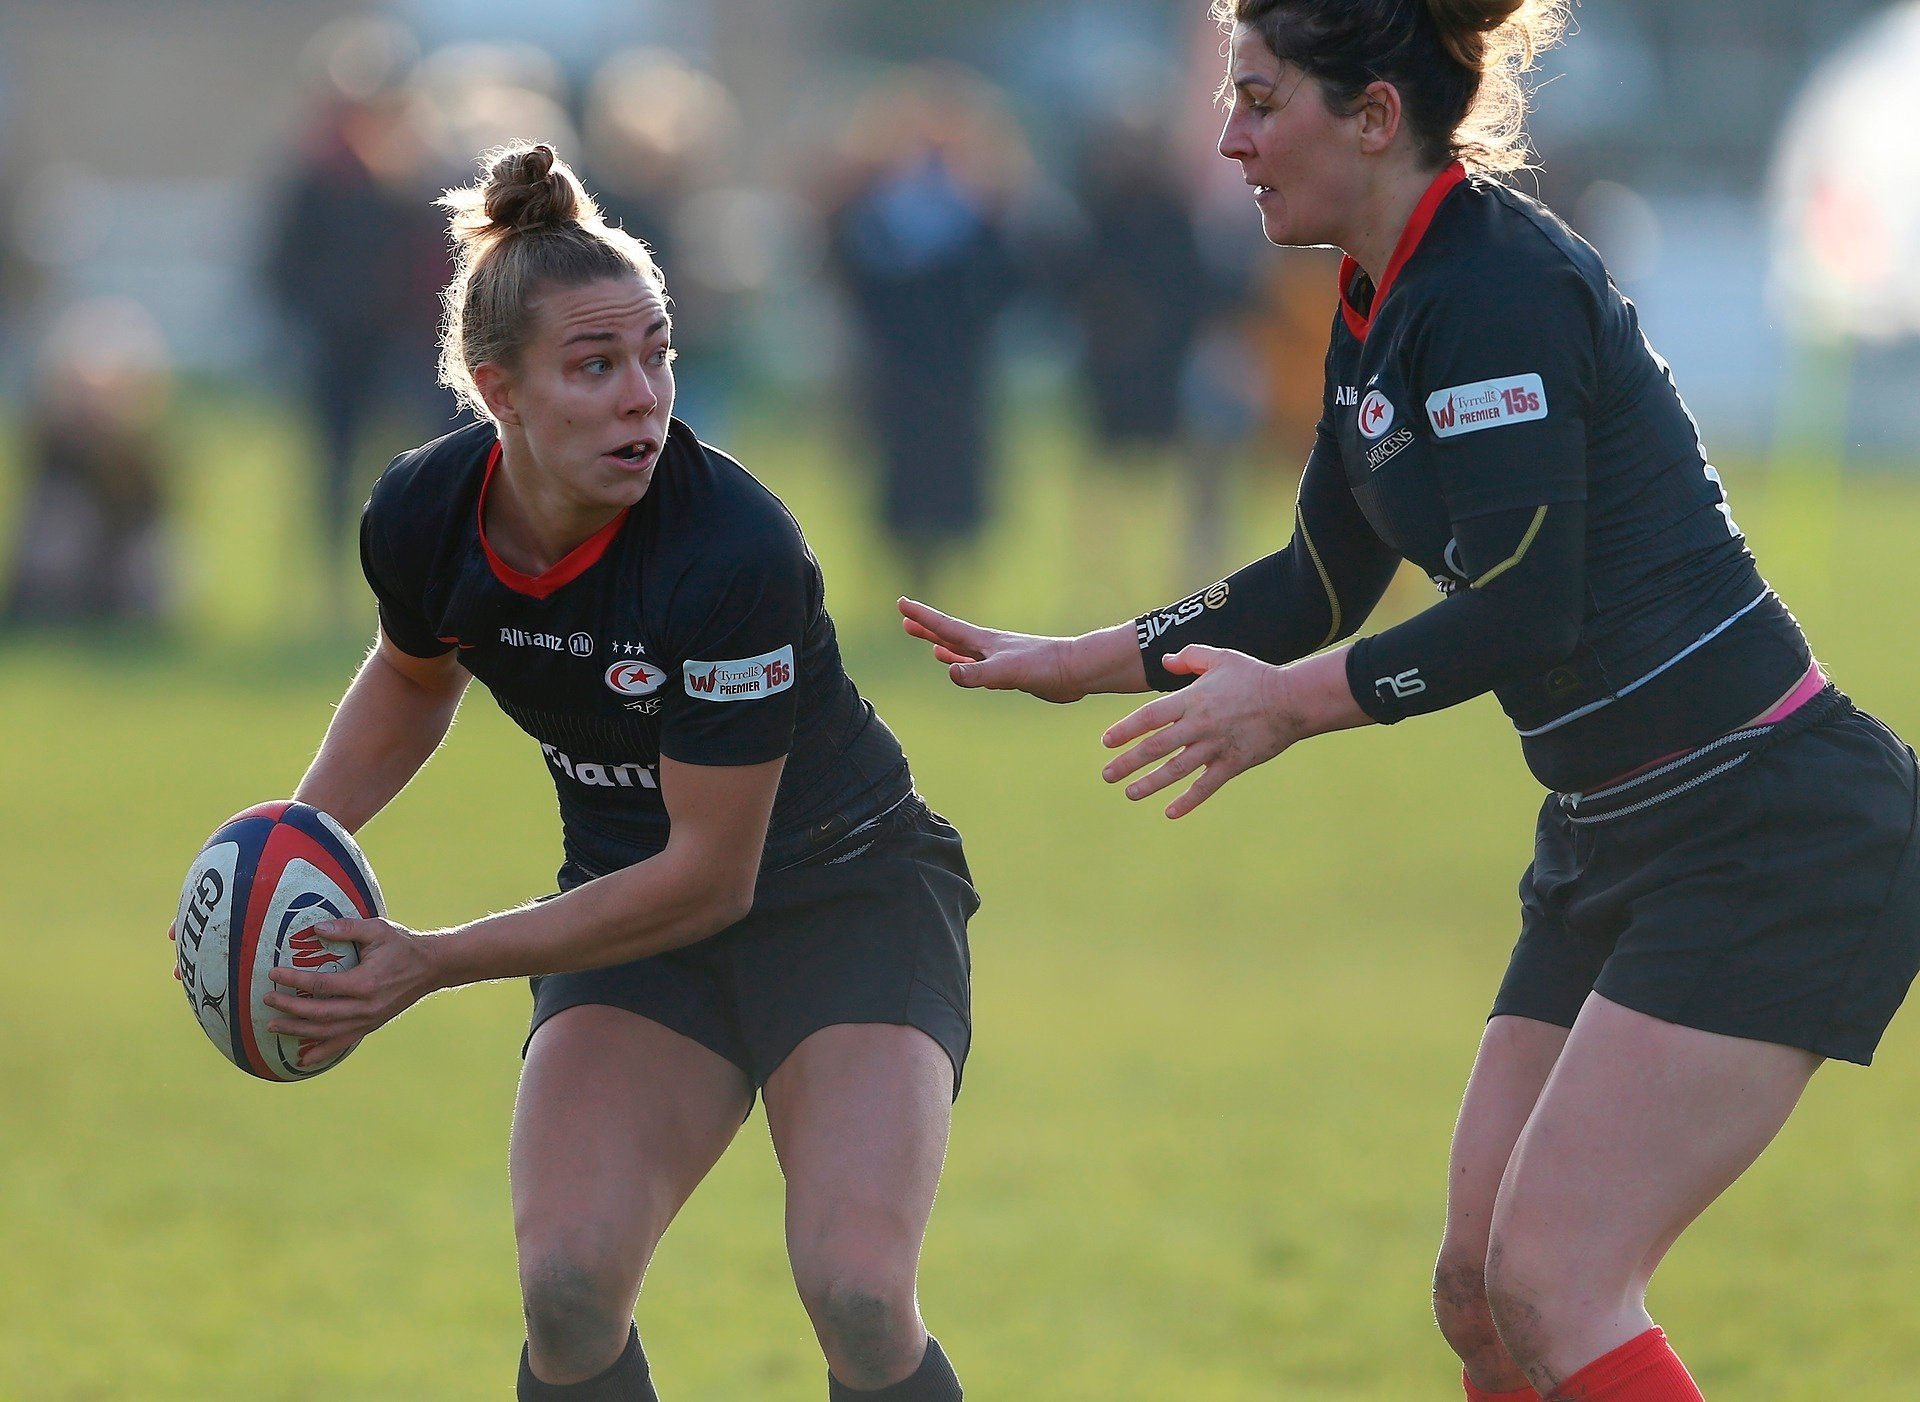 Premier 15s round-up: Saracens and Harlequins remain unbeaten to set up mouth-watering clash next weekend